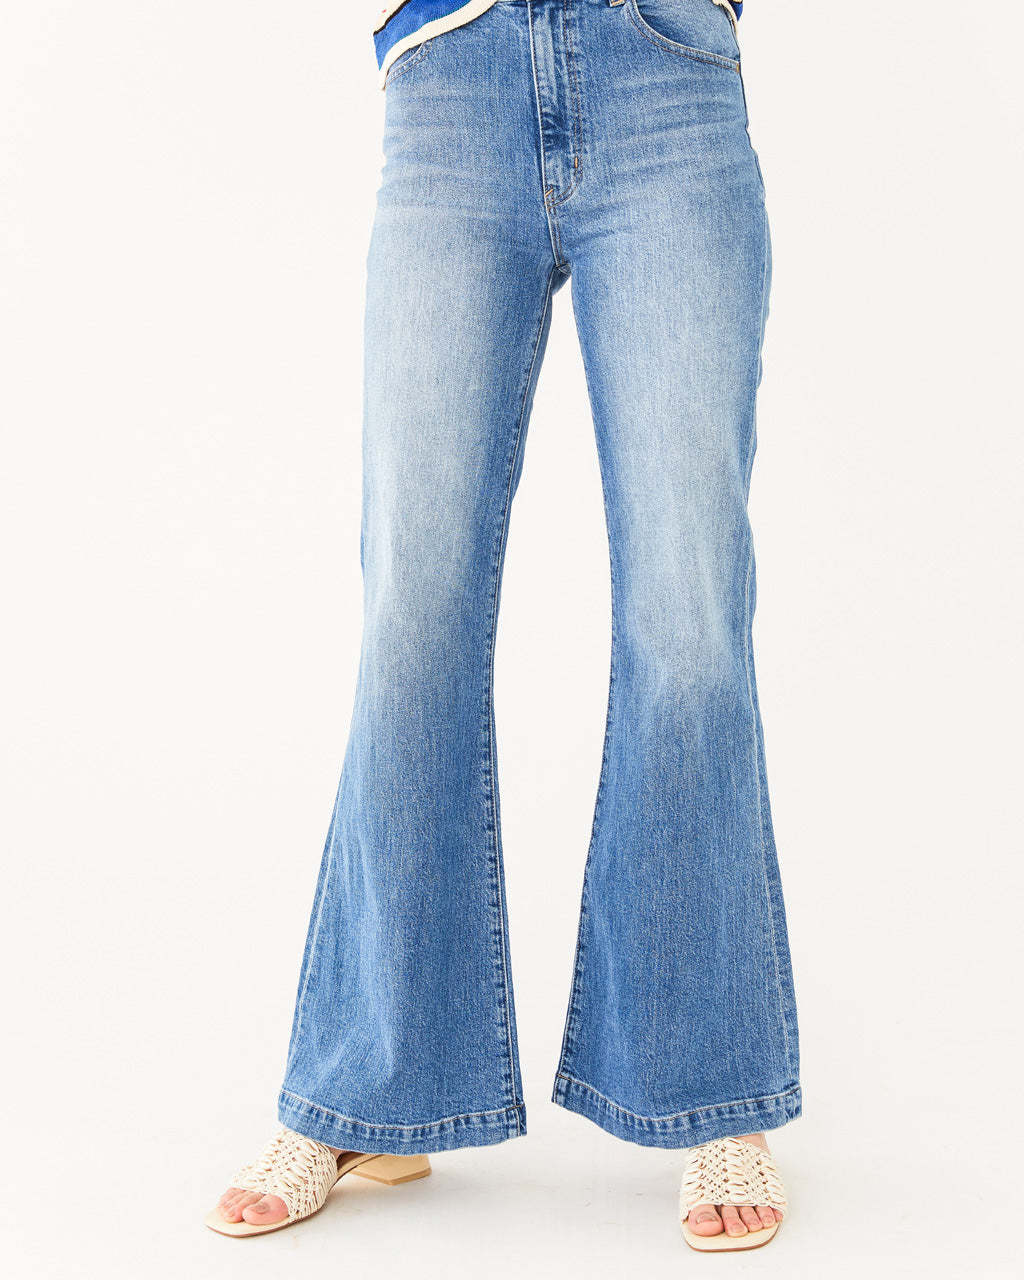 light wash flare jeans with a high waist fit